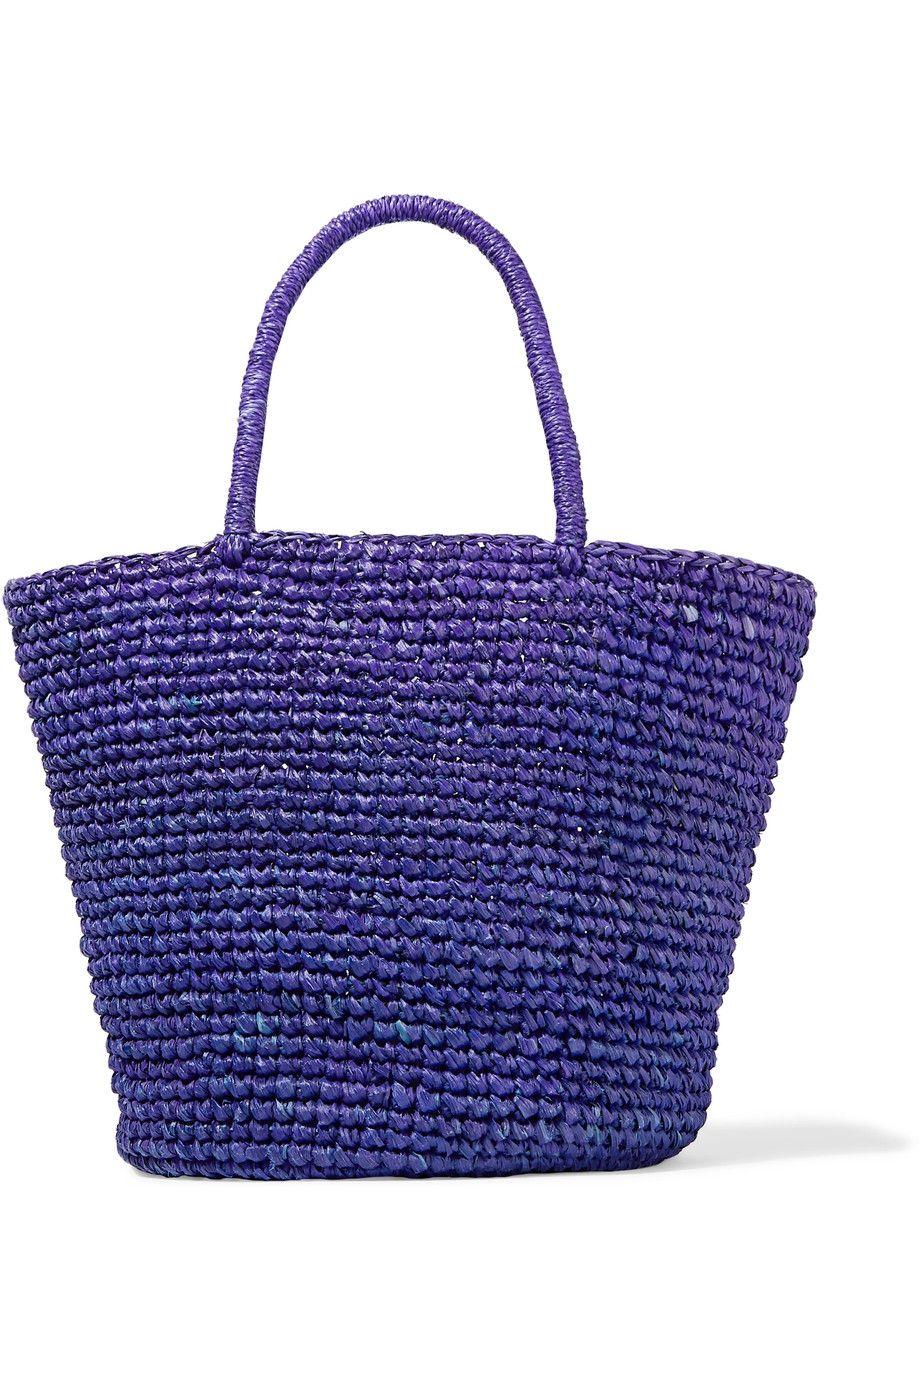 Shop on-sale Sensi Studio Woven toquilla straw tote. Browse other discount  designer Totes   more on The Most Fashionable Fashion Outlet 8f89437286e8